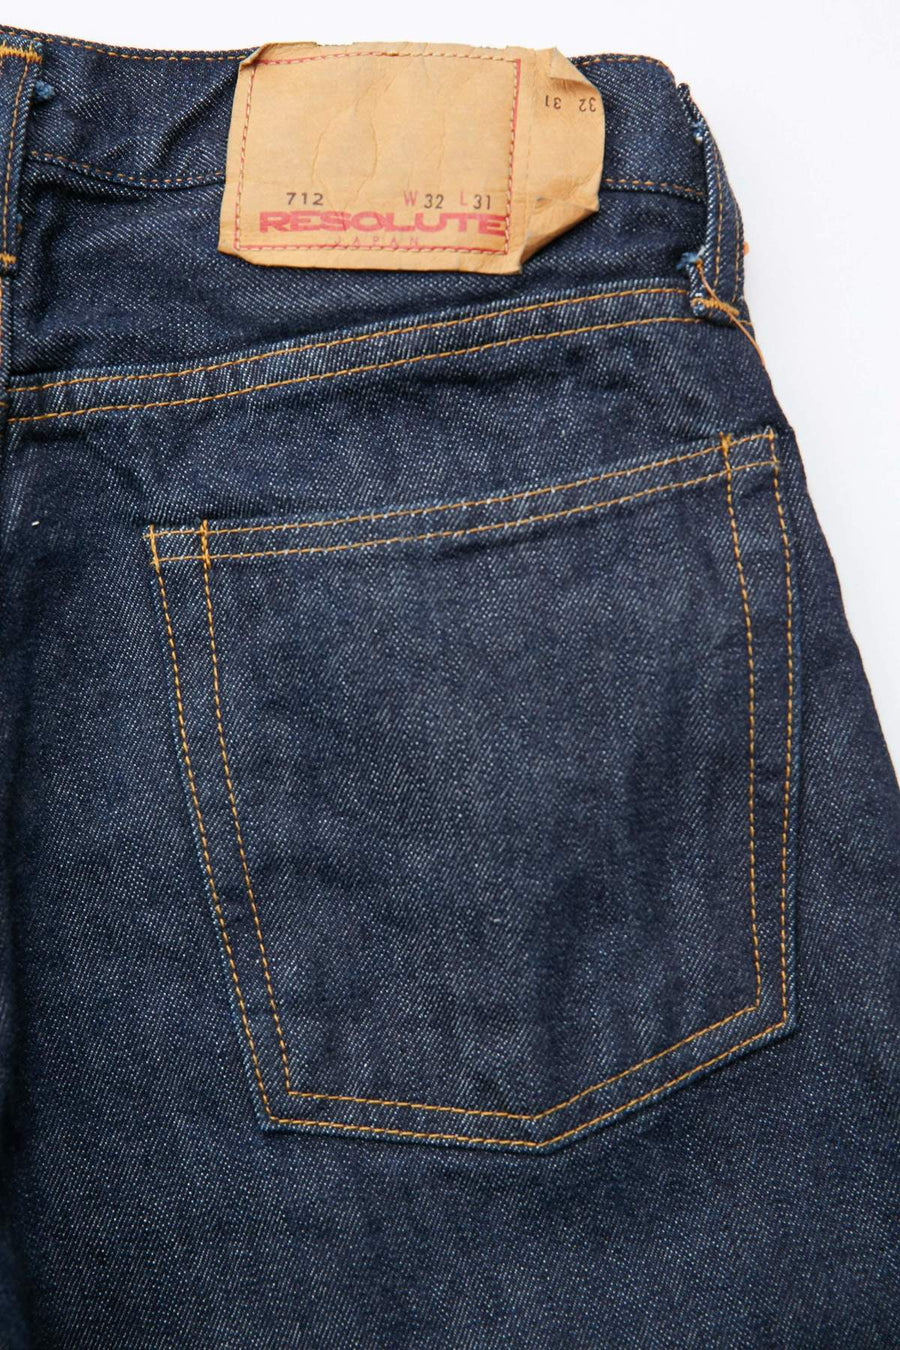 Resolute 712 Denim Jean